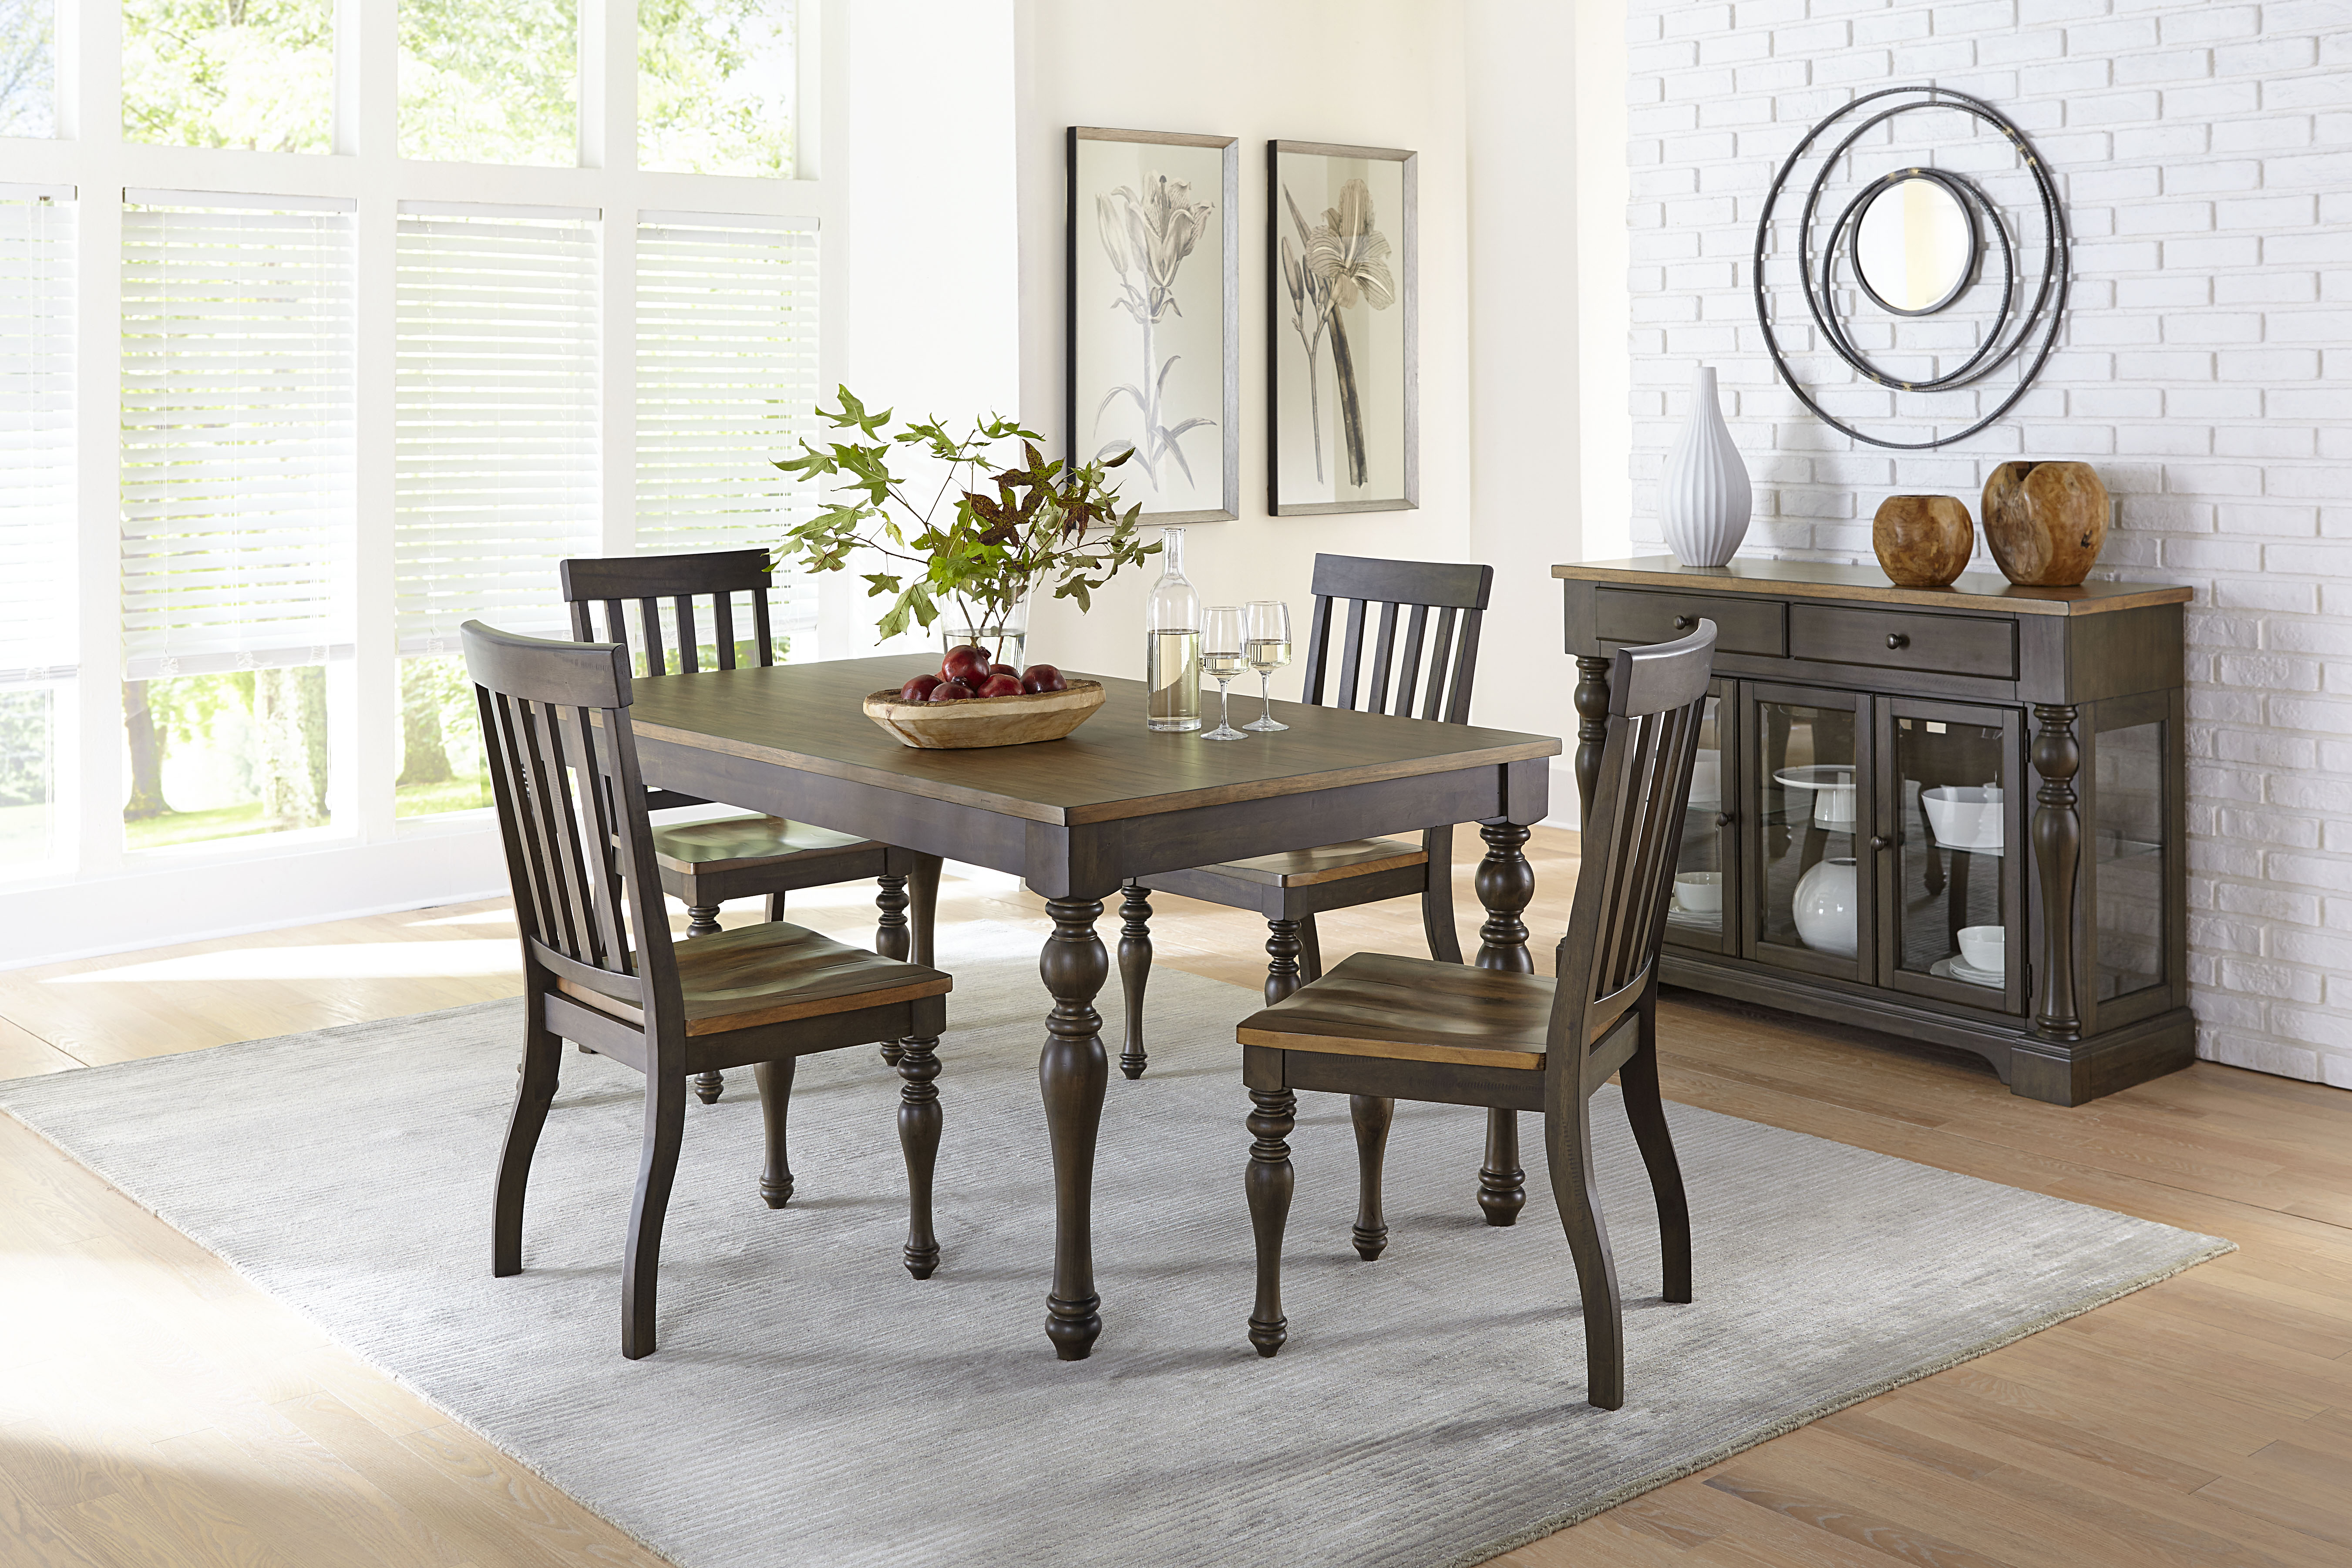 When All Is Said & Dunmore: We Love This New Dining Set! Intended For Recent Cargo 5 Piece Dining Sets (#20 of 20)